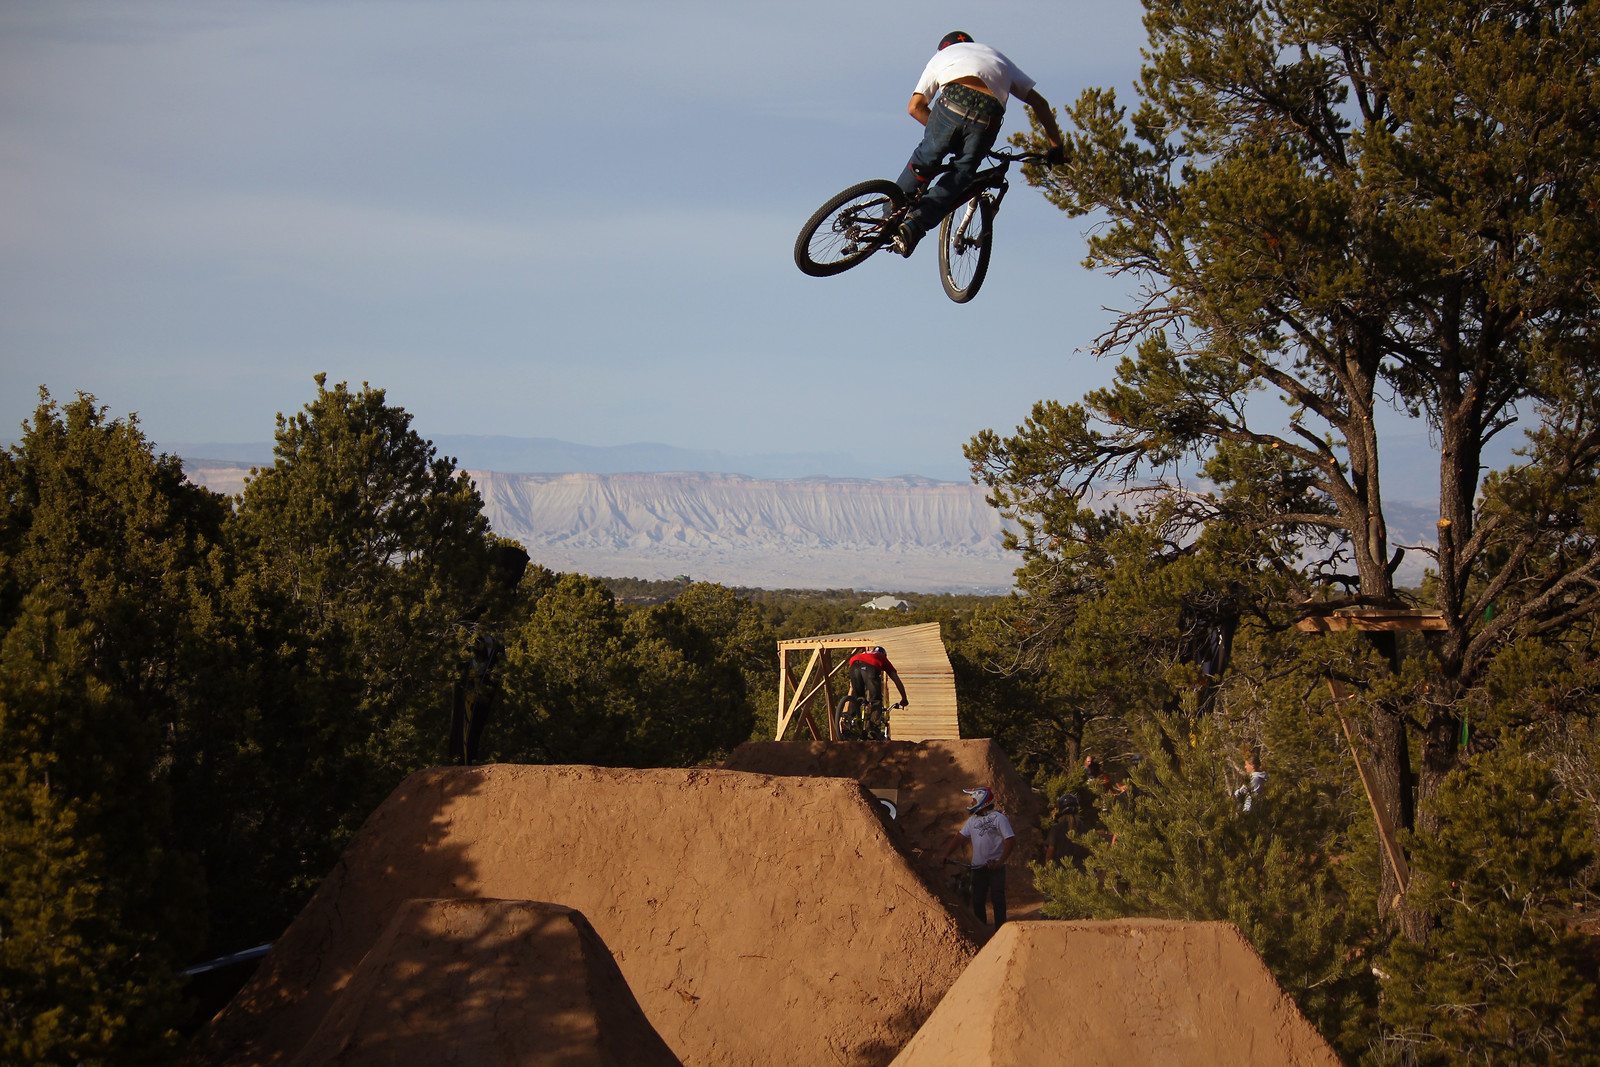 R Dog Blasting at Ranch Style 2011  - bturman - Mountain Biking Pictures - Vital MTB